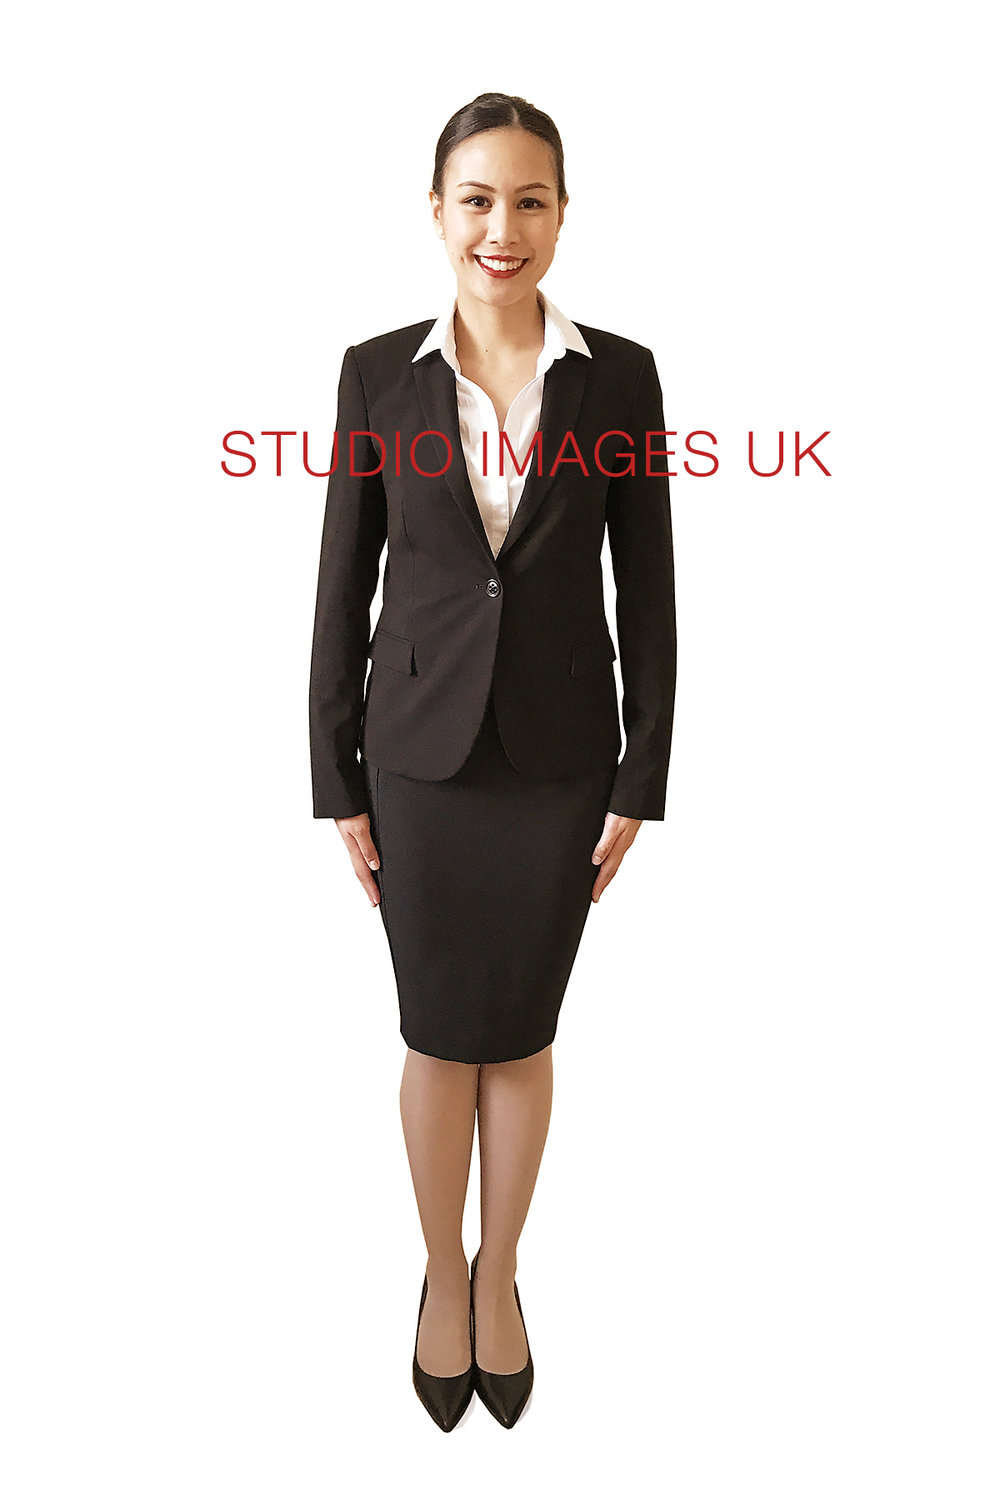 Dress Code - Smart business attire with full length hosiery.If wearing a skirt, it should be one inch below the knee.NailsClean and manicured with nail varnish in clear, red or French manicure.TattoosNo visible tattoos.ShoesWear heels.